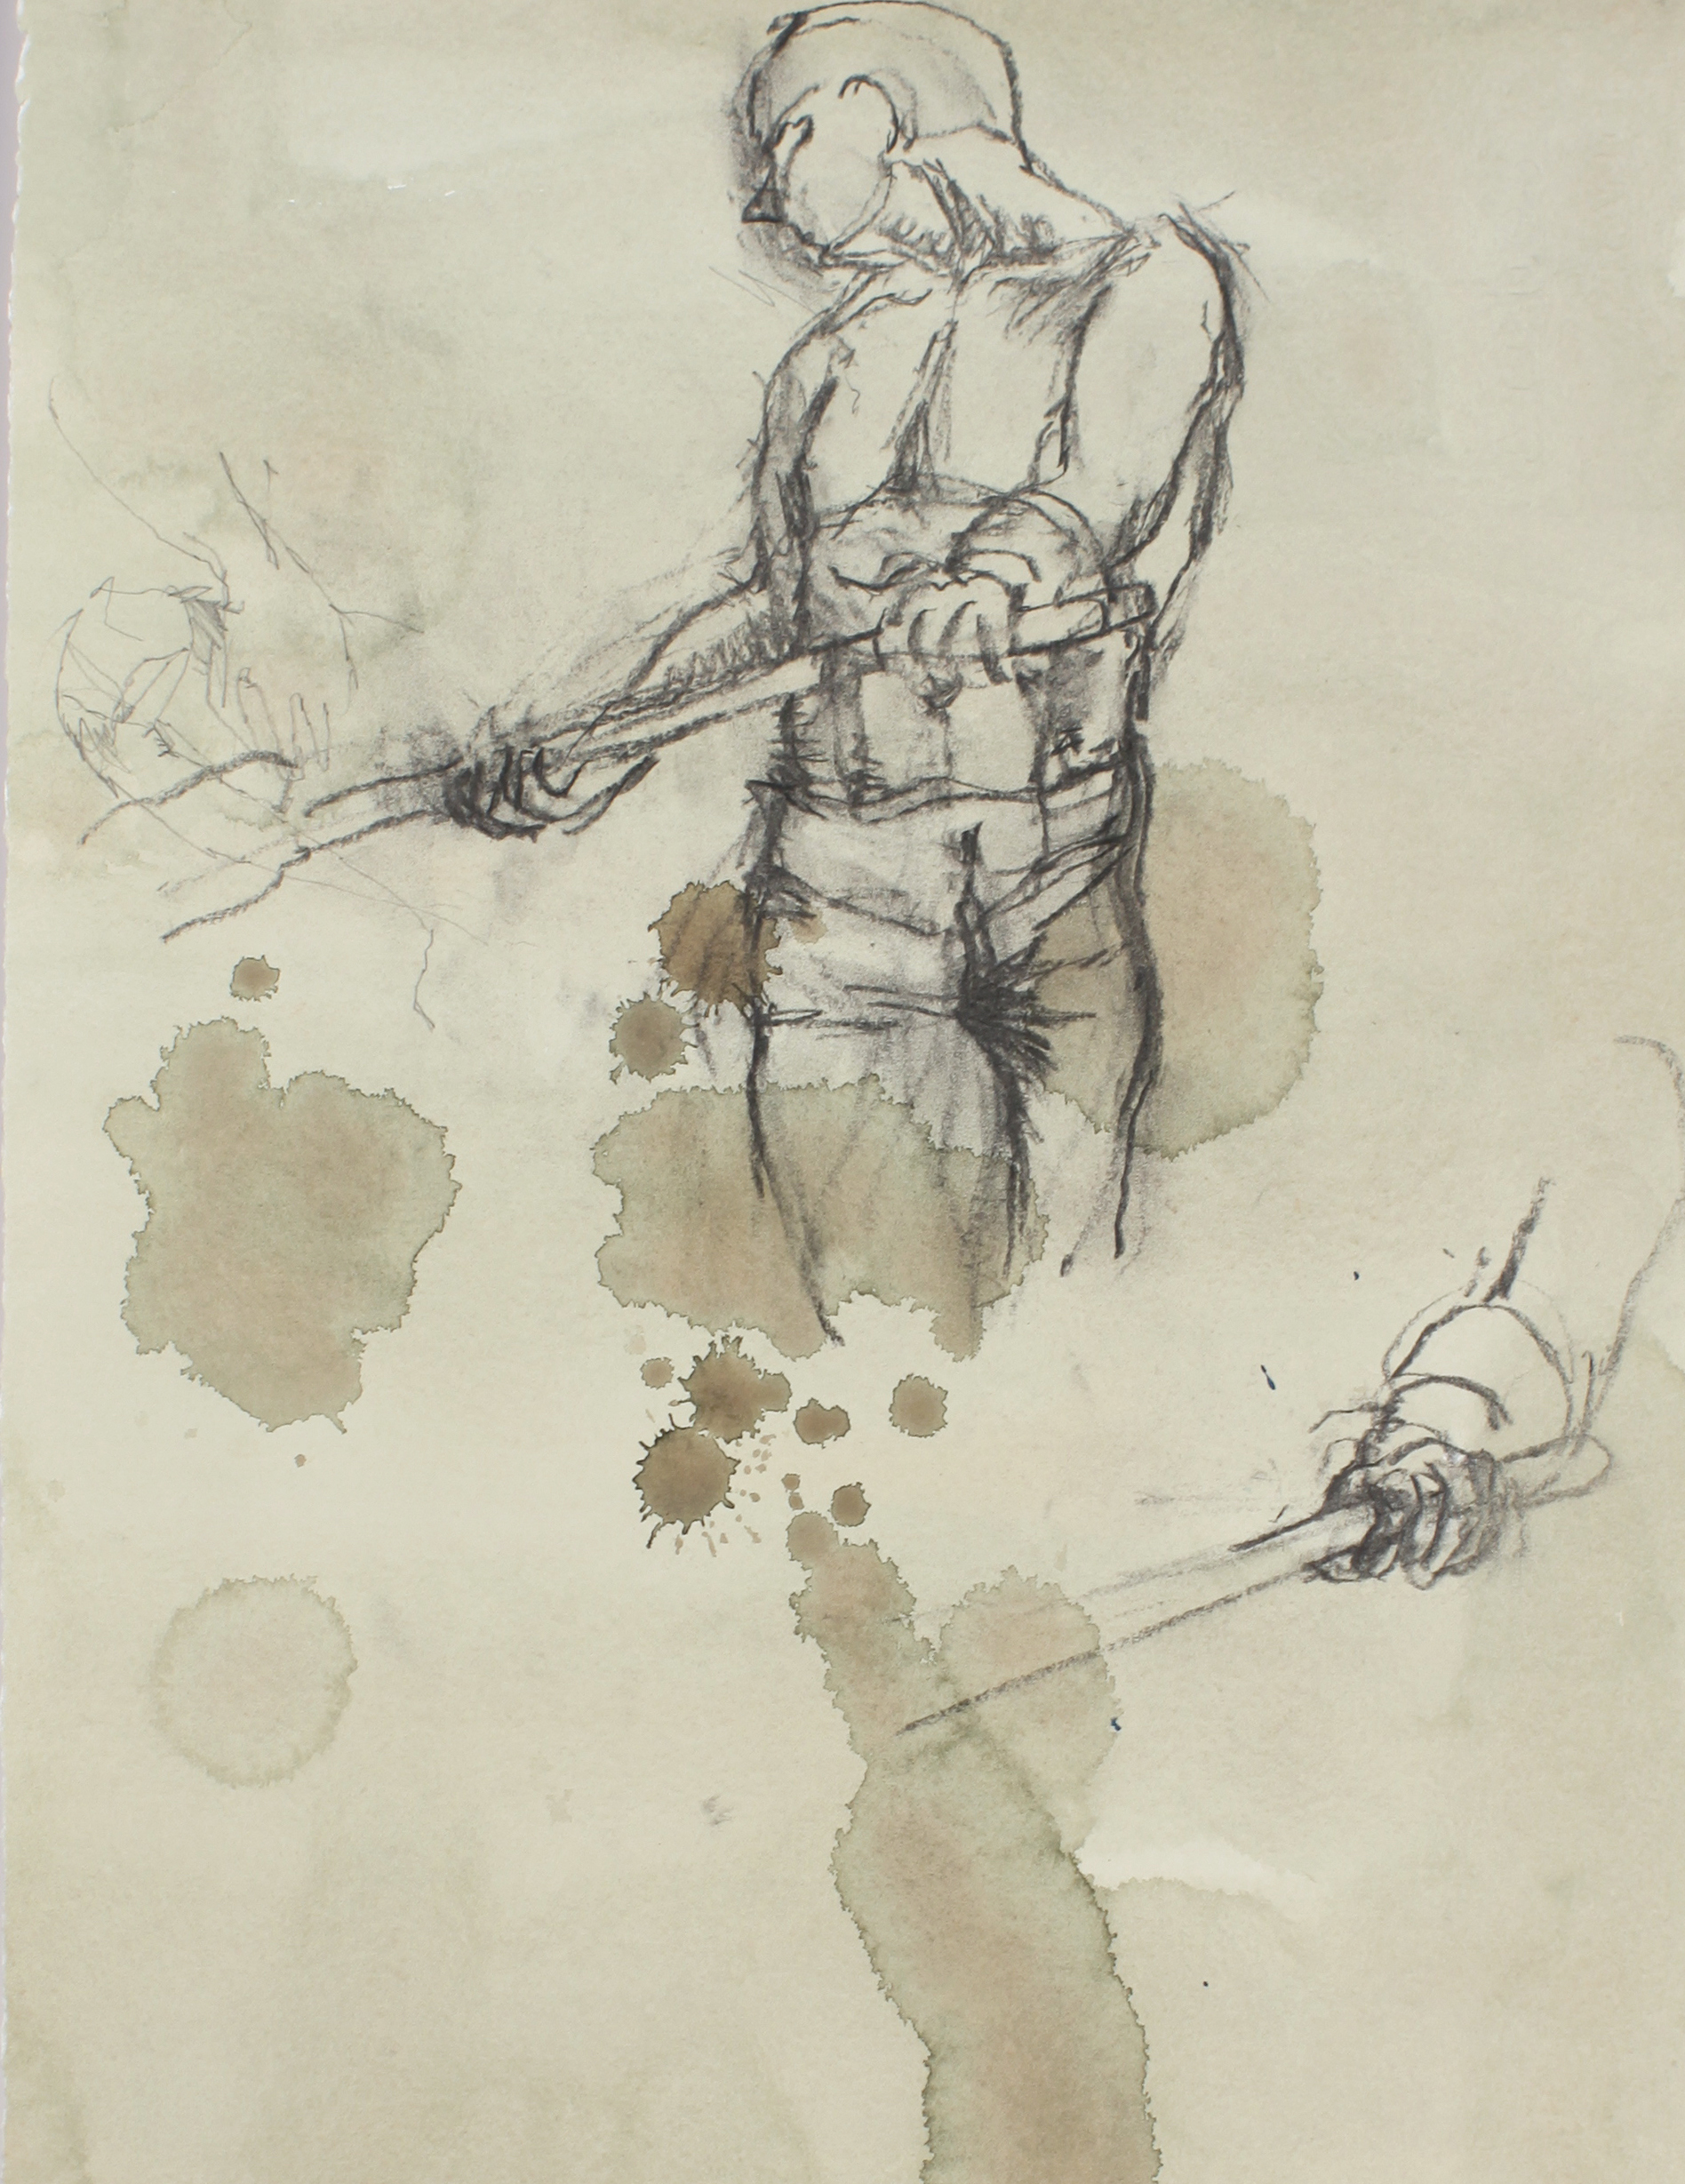 1980s_Standing_with_Shovel_Turned_to_Left_charcoal_on_painted_paper_15x11in_WPF604.jpg